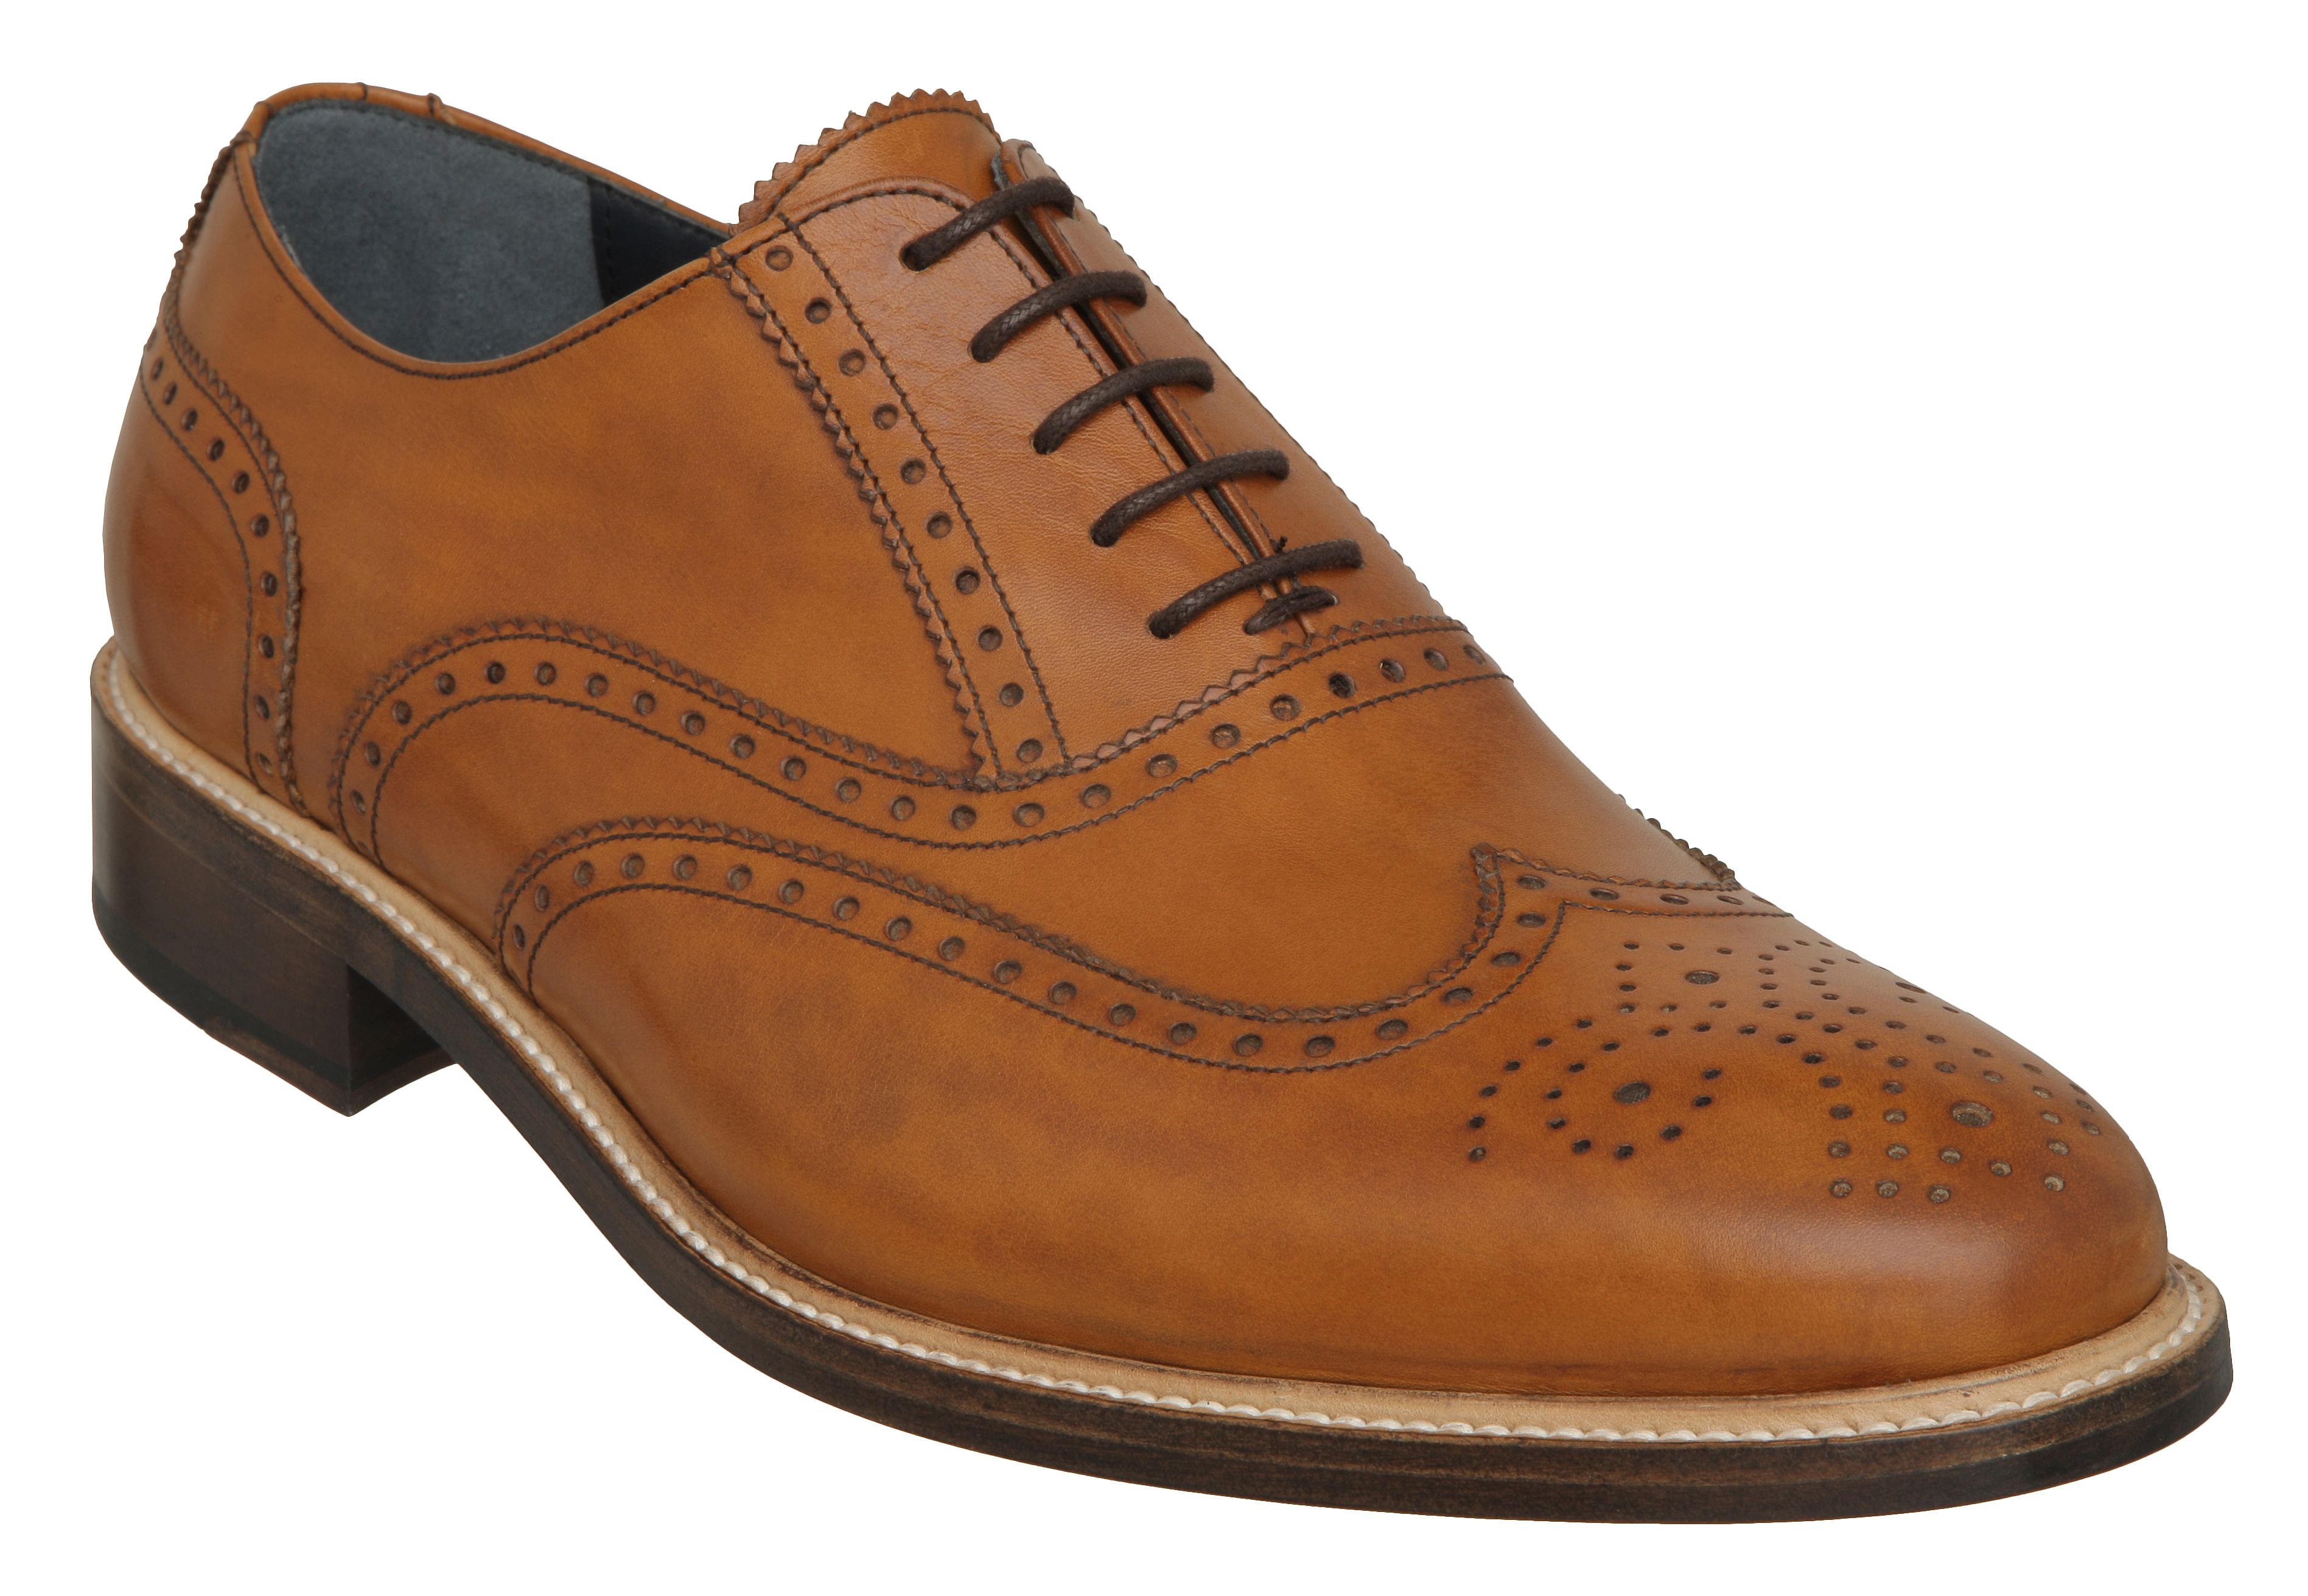 Sunbeam formal shoes